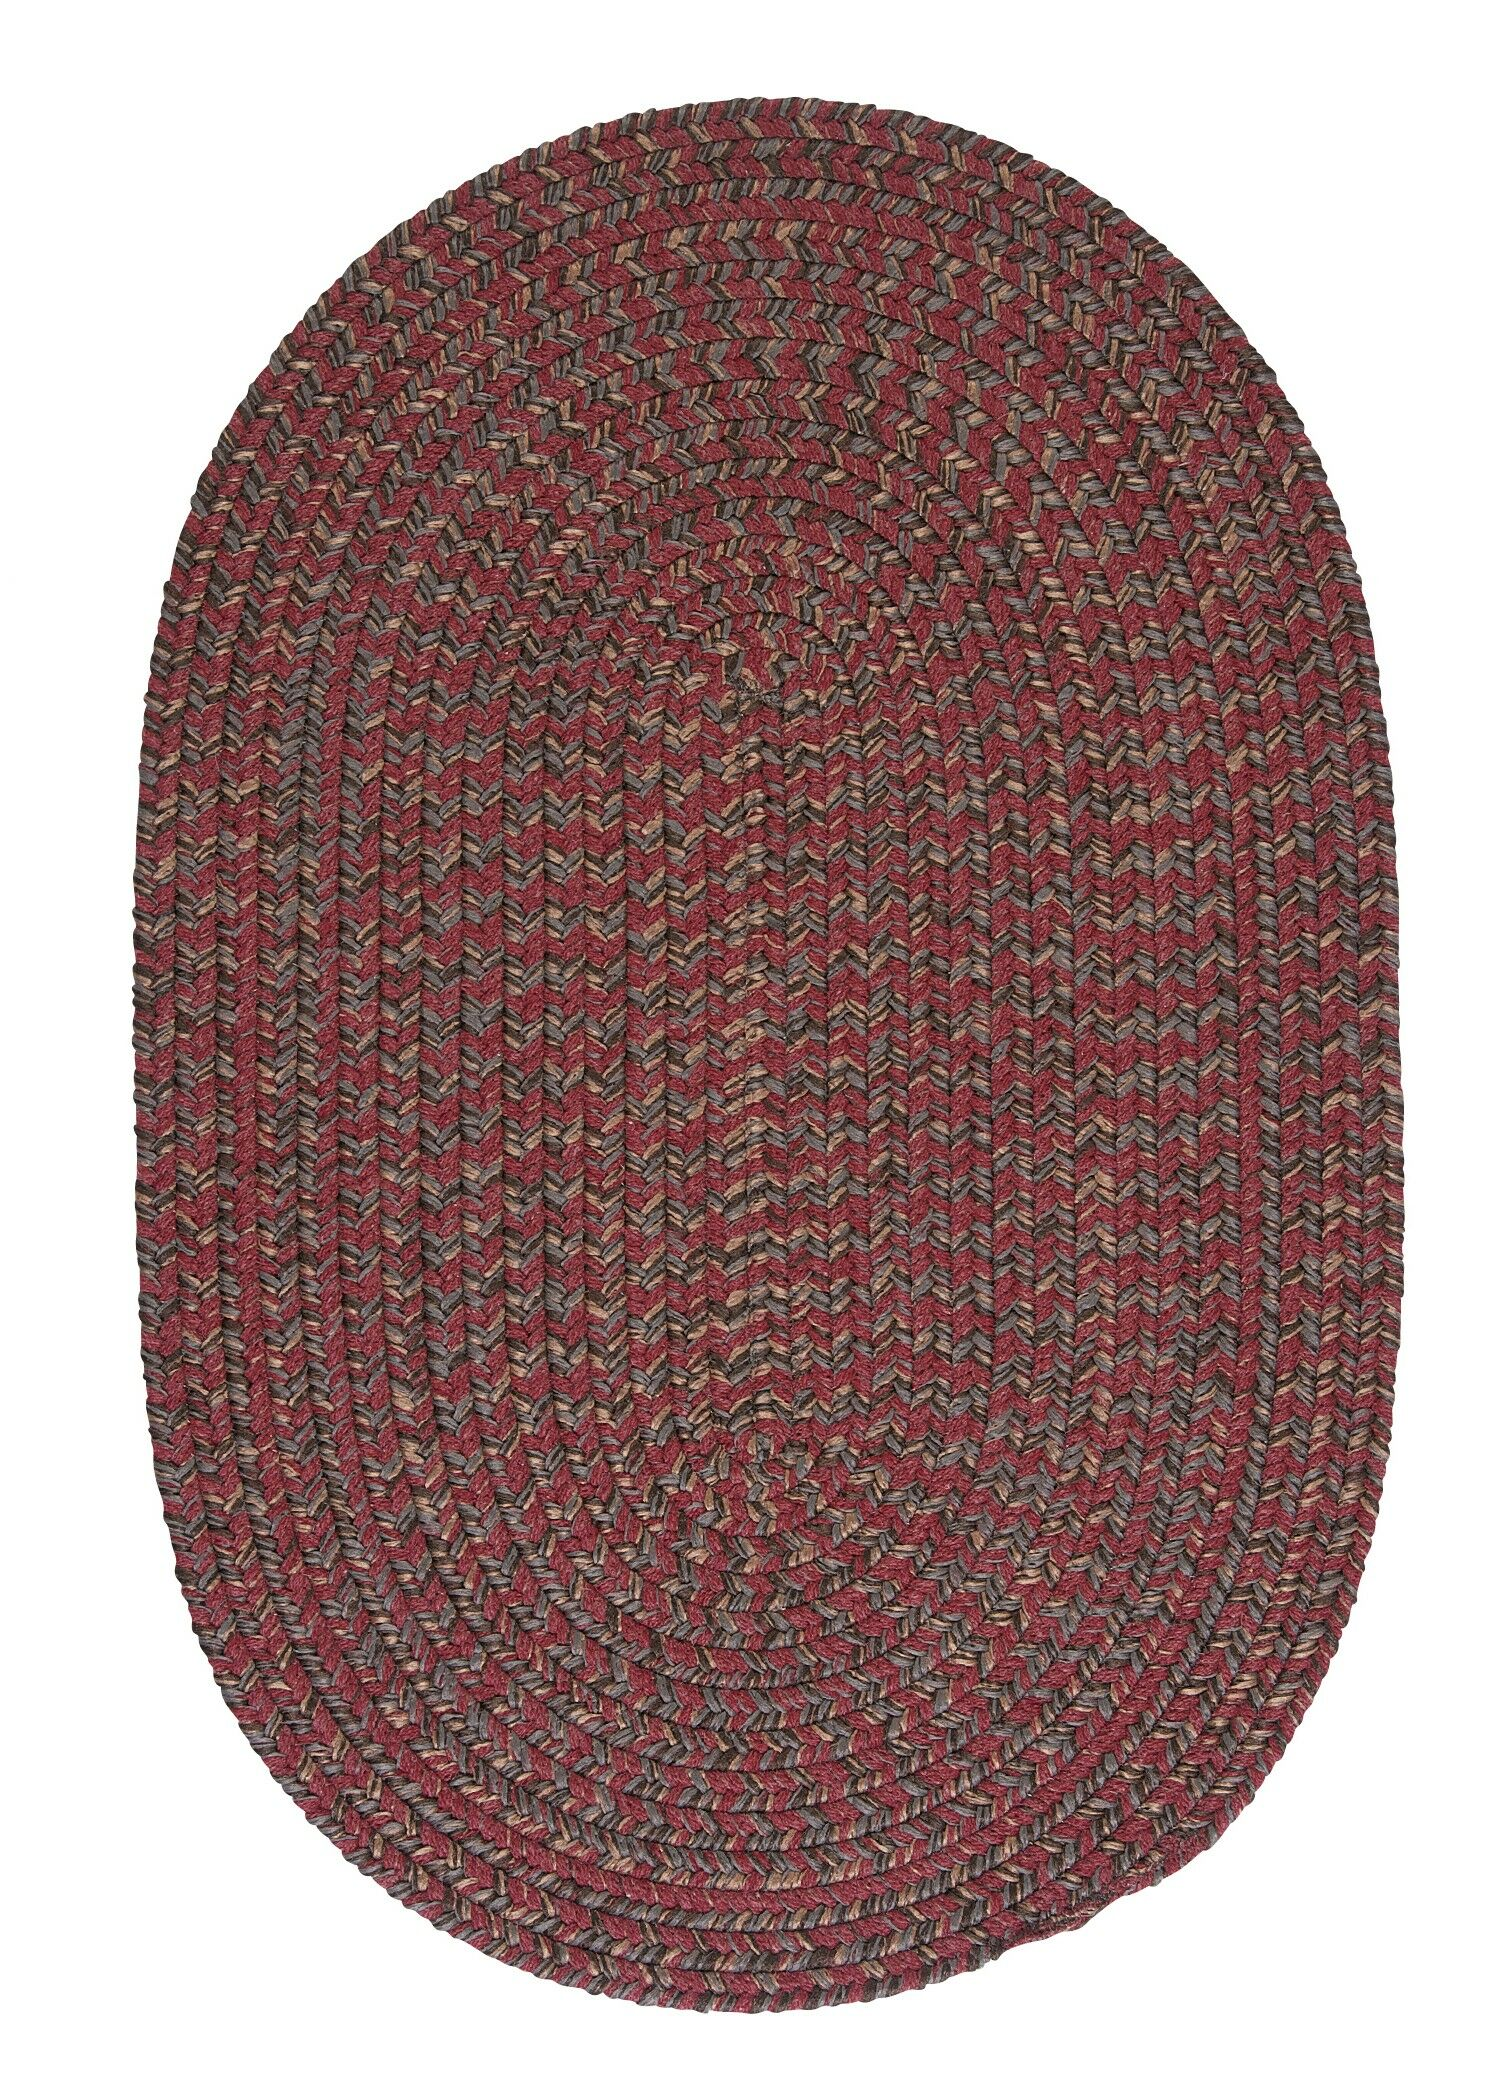 Abey Berry Red Area Rug Rug Size: Round 4'